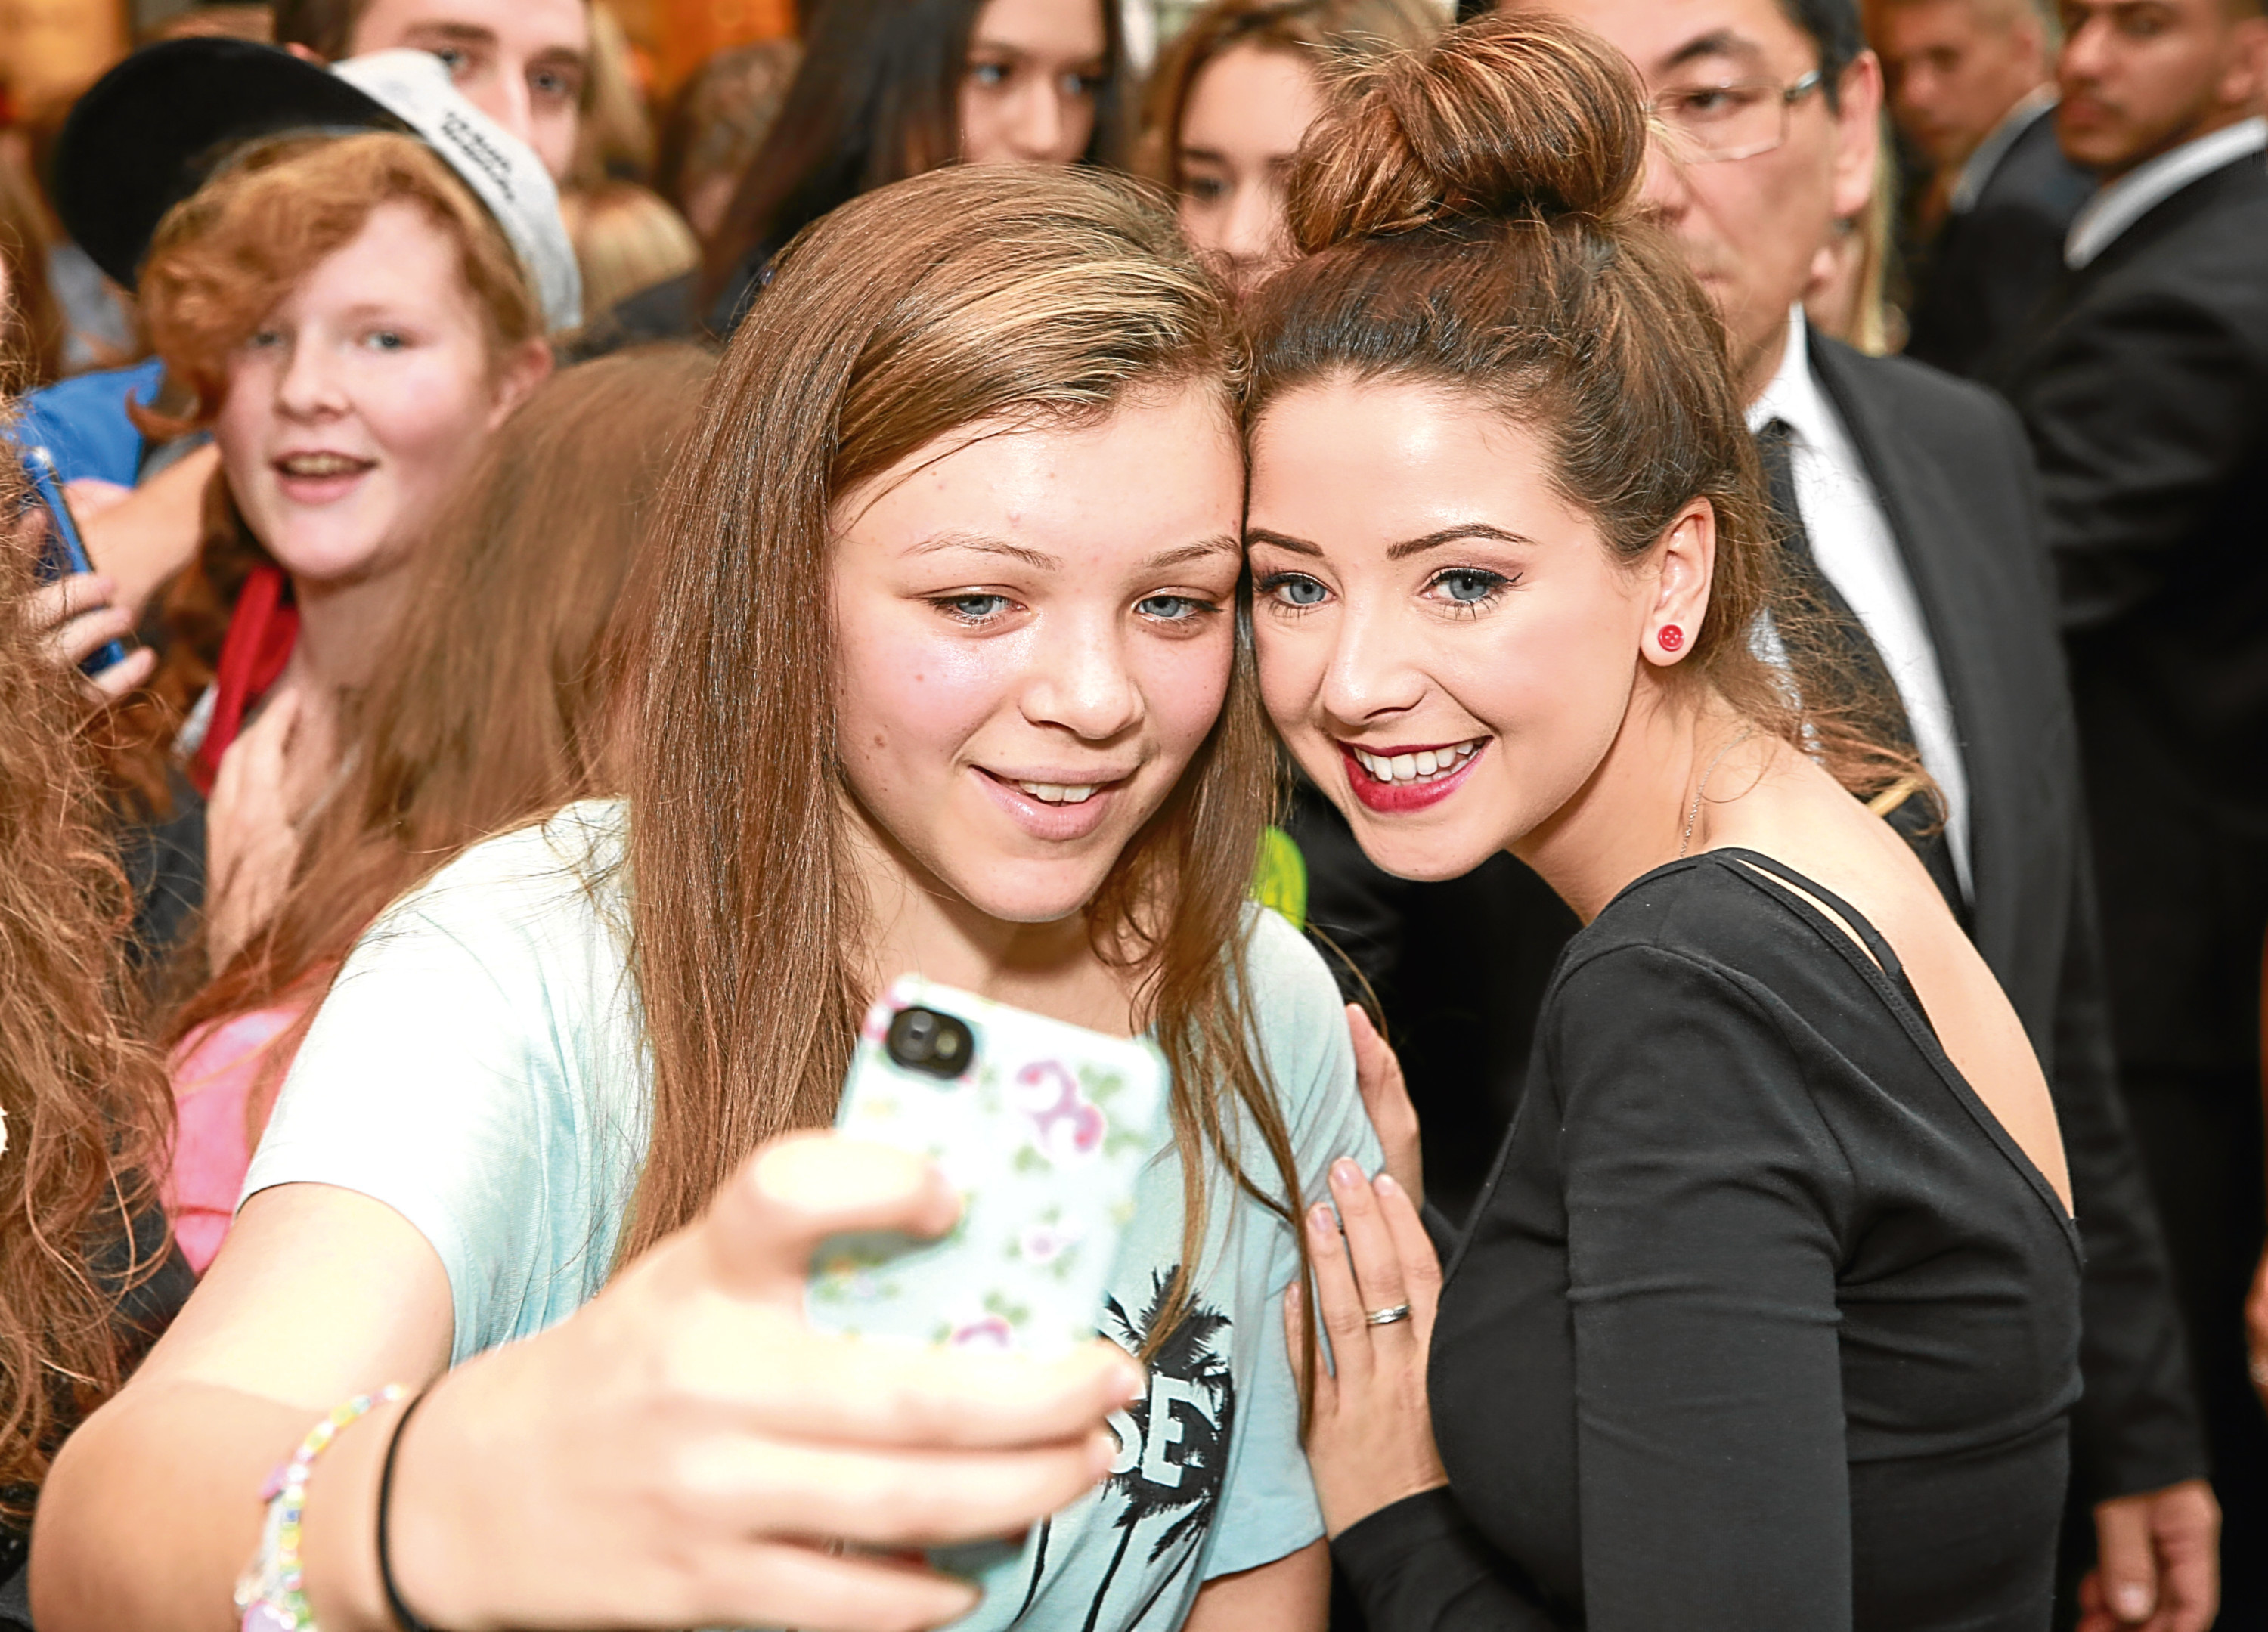 YouTube vlogger Zoella, real name Zoe Suggs, meets fans at the launch of her pop-up store at Westfield Stratford City in London (PA)